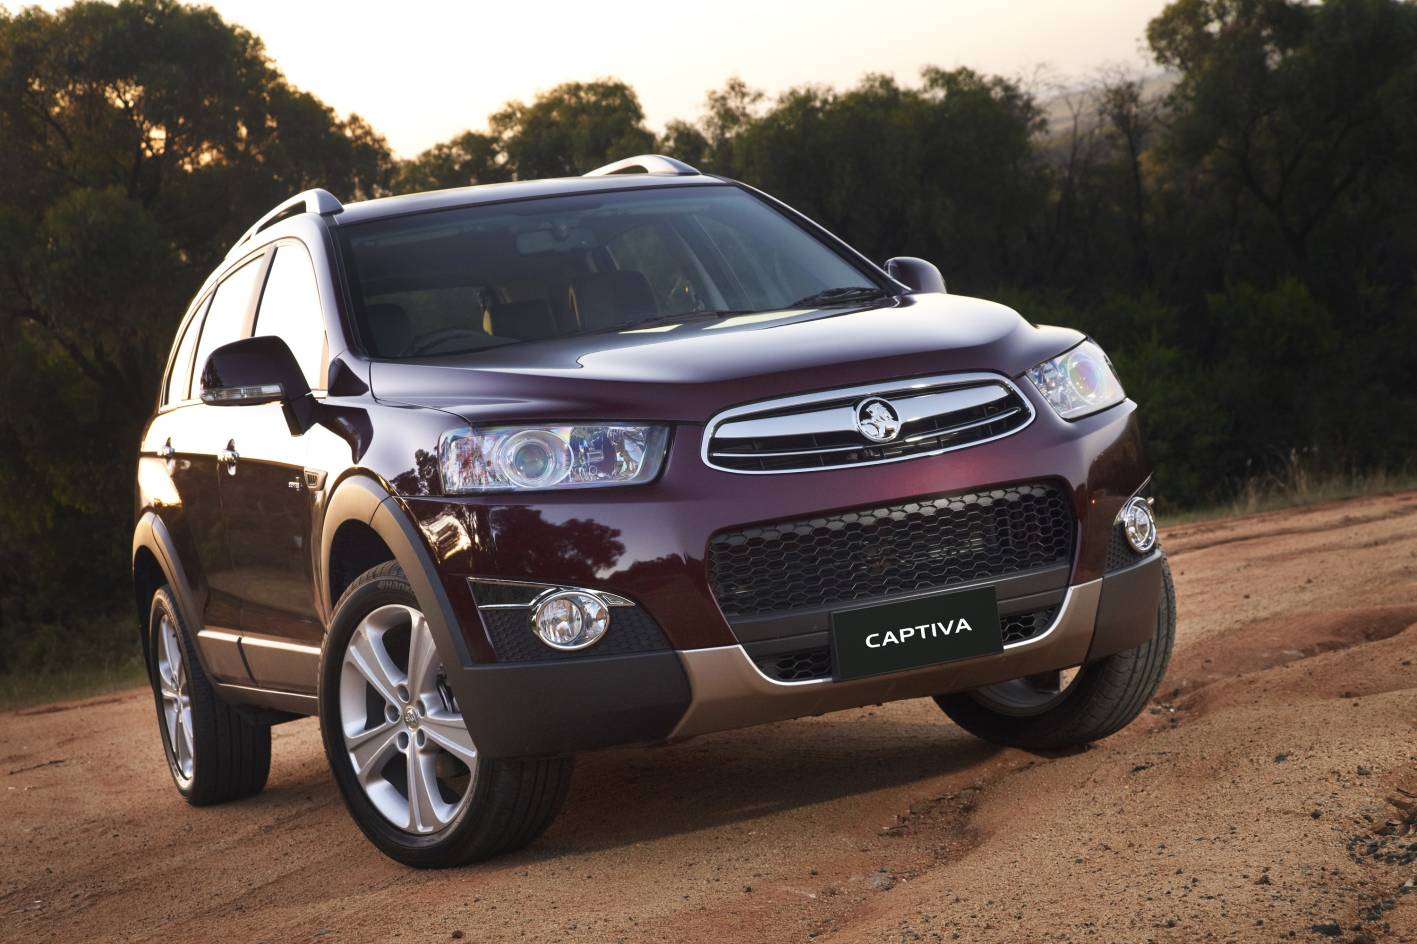 small resolution of john what are your thoughts on the holden captiva ltz i am looking at a mid size suv with 7 seat capability which will be seldom used